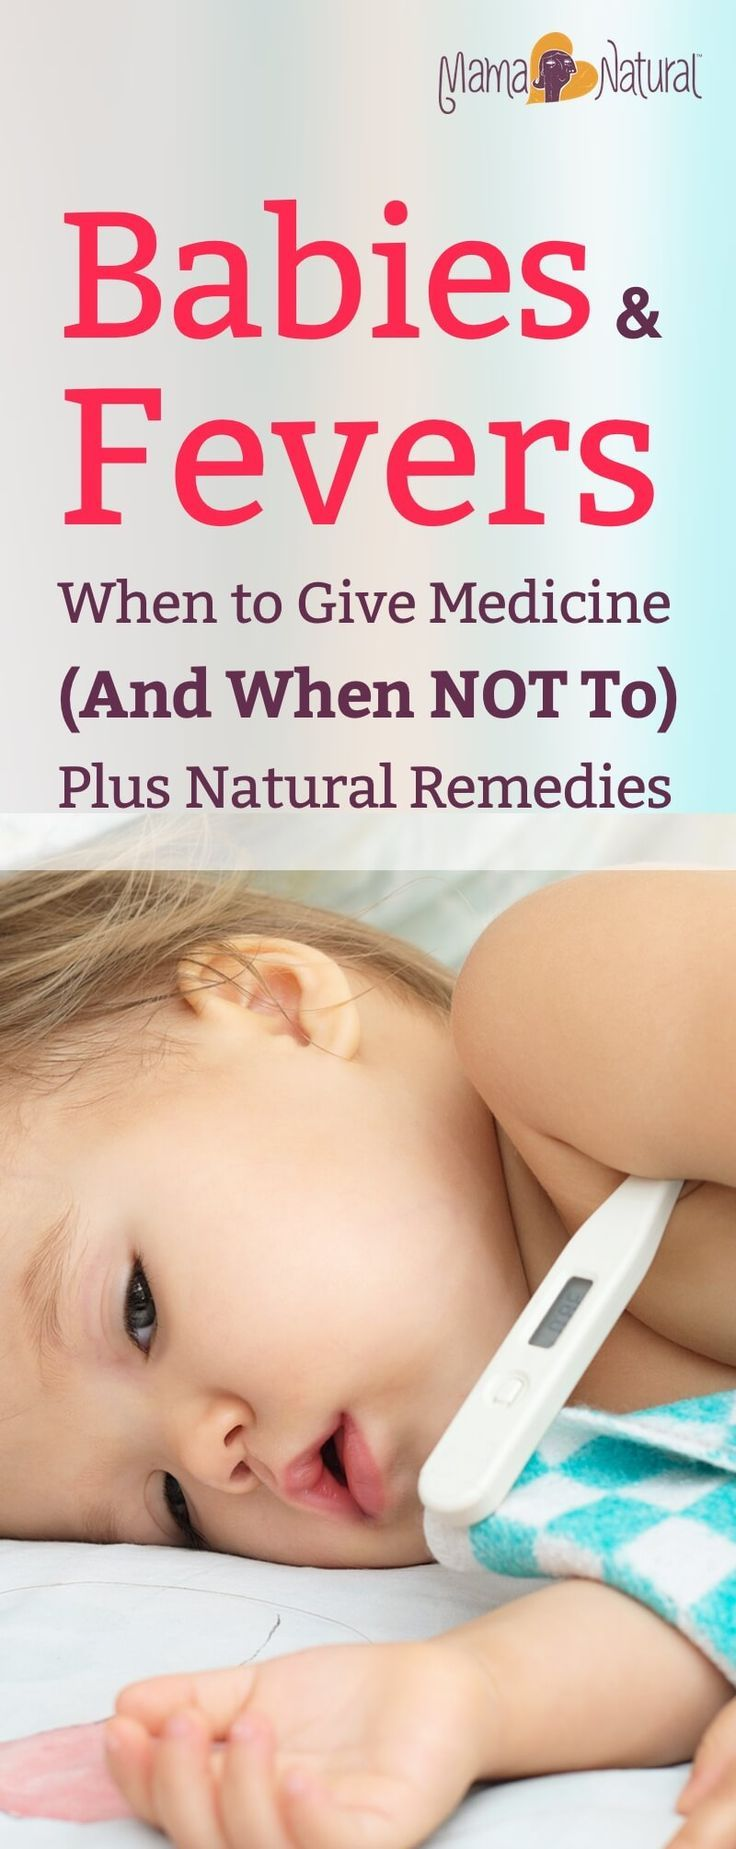 Should you be worried when baby runs a fever? Do you need to give baby medicine? Here's everything you need to know about baby fever—plus natural remedies. http://www.mamanatural.com/baby-fever/